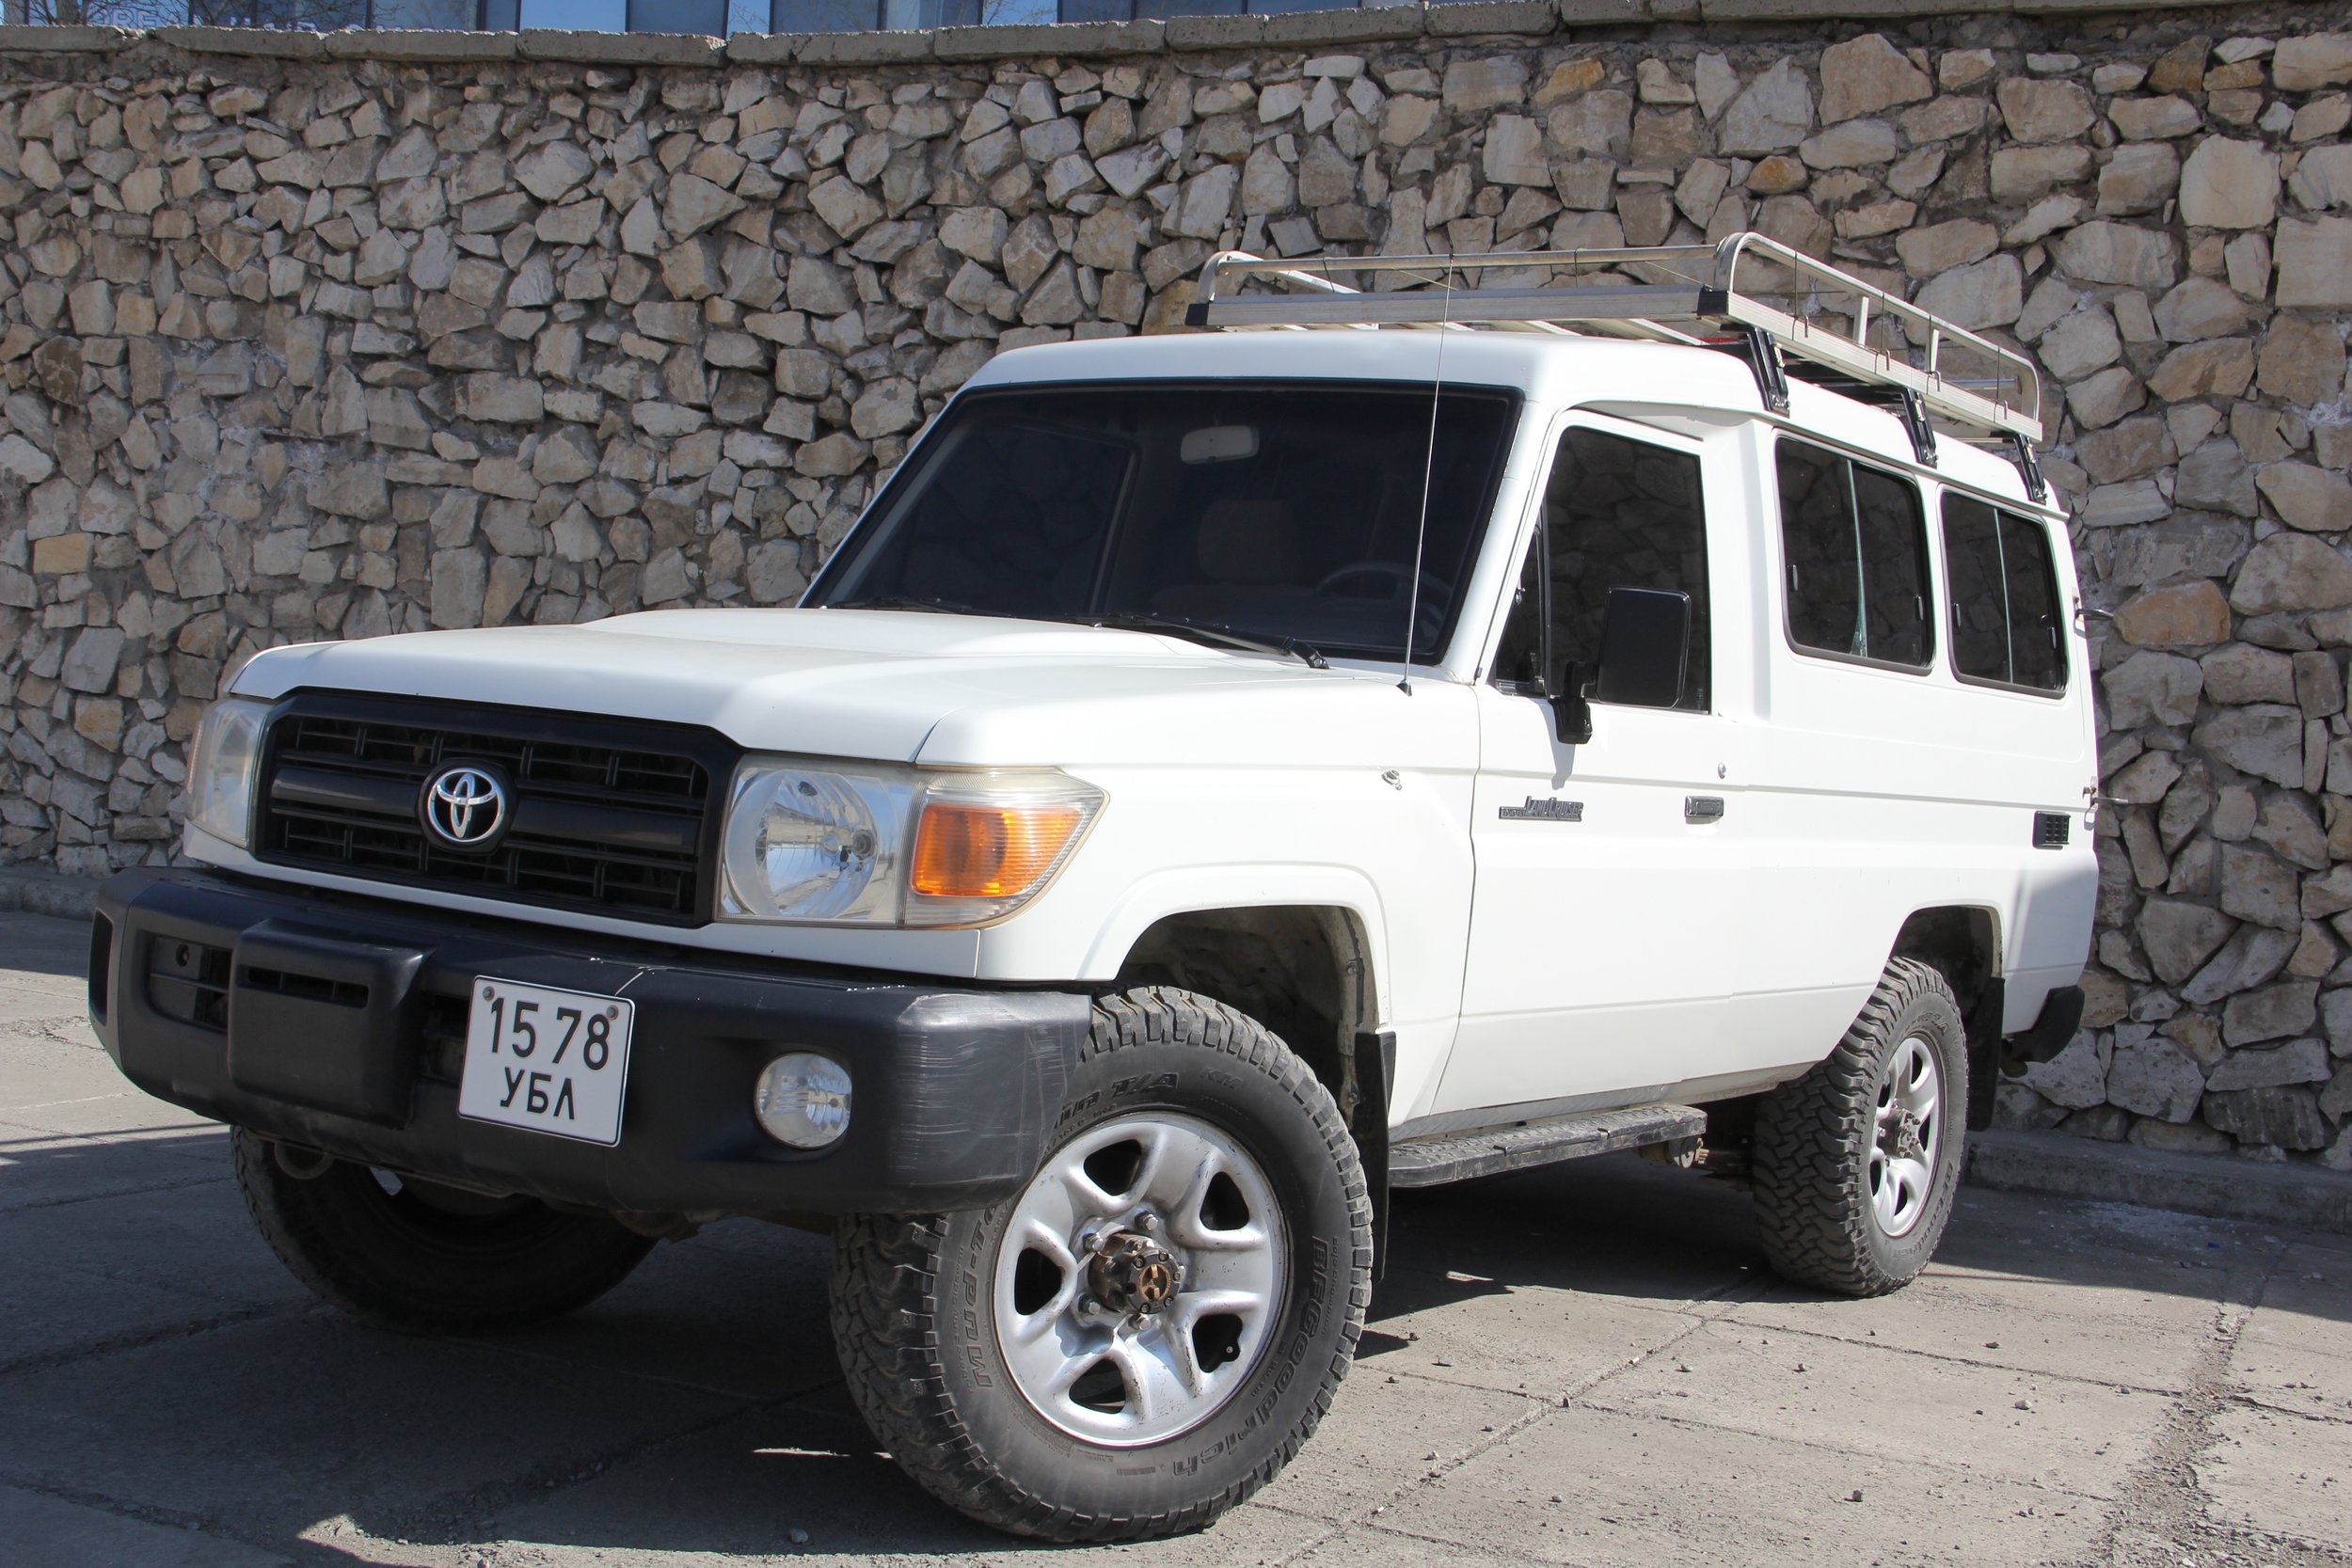 """TOYOTA LAND CRUISER 78 SERIES, DIESEL, MECHANIC AND TOUGH OFF ROADING CAPABILITIES.   ALL OUR CARS ARE EQUIPPED WITH """"  ARB""""BUMPER AND WINCHES. WE'LL PROVIDE TWO EXTRA TIRES. ROOF TENTS ARE OPTIONAL AND IT CAN BE INSTALLED IN EVERY VEHICLE. AND WE HAVE """"LUGGAGE STORAGE SERVICE"""" WITH FREE OF CHARGE."""